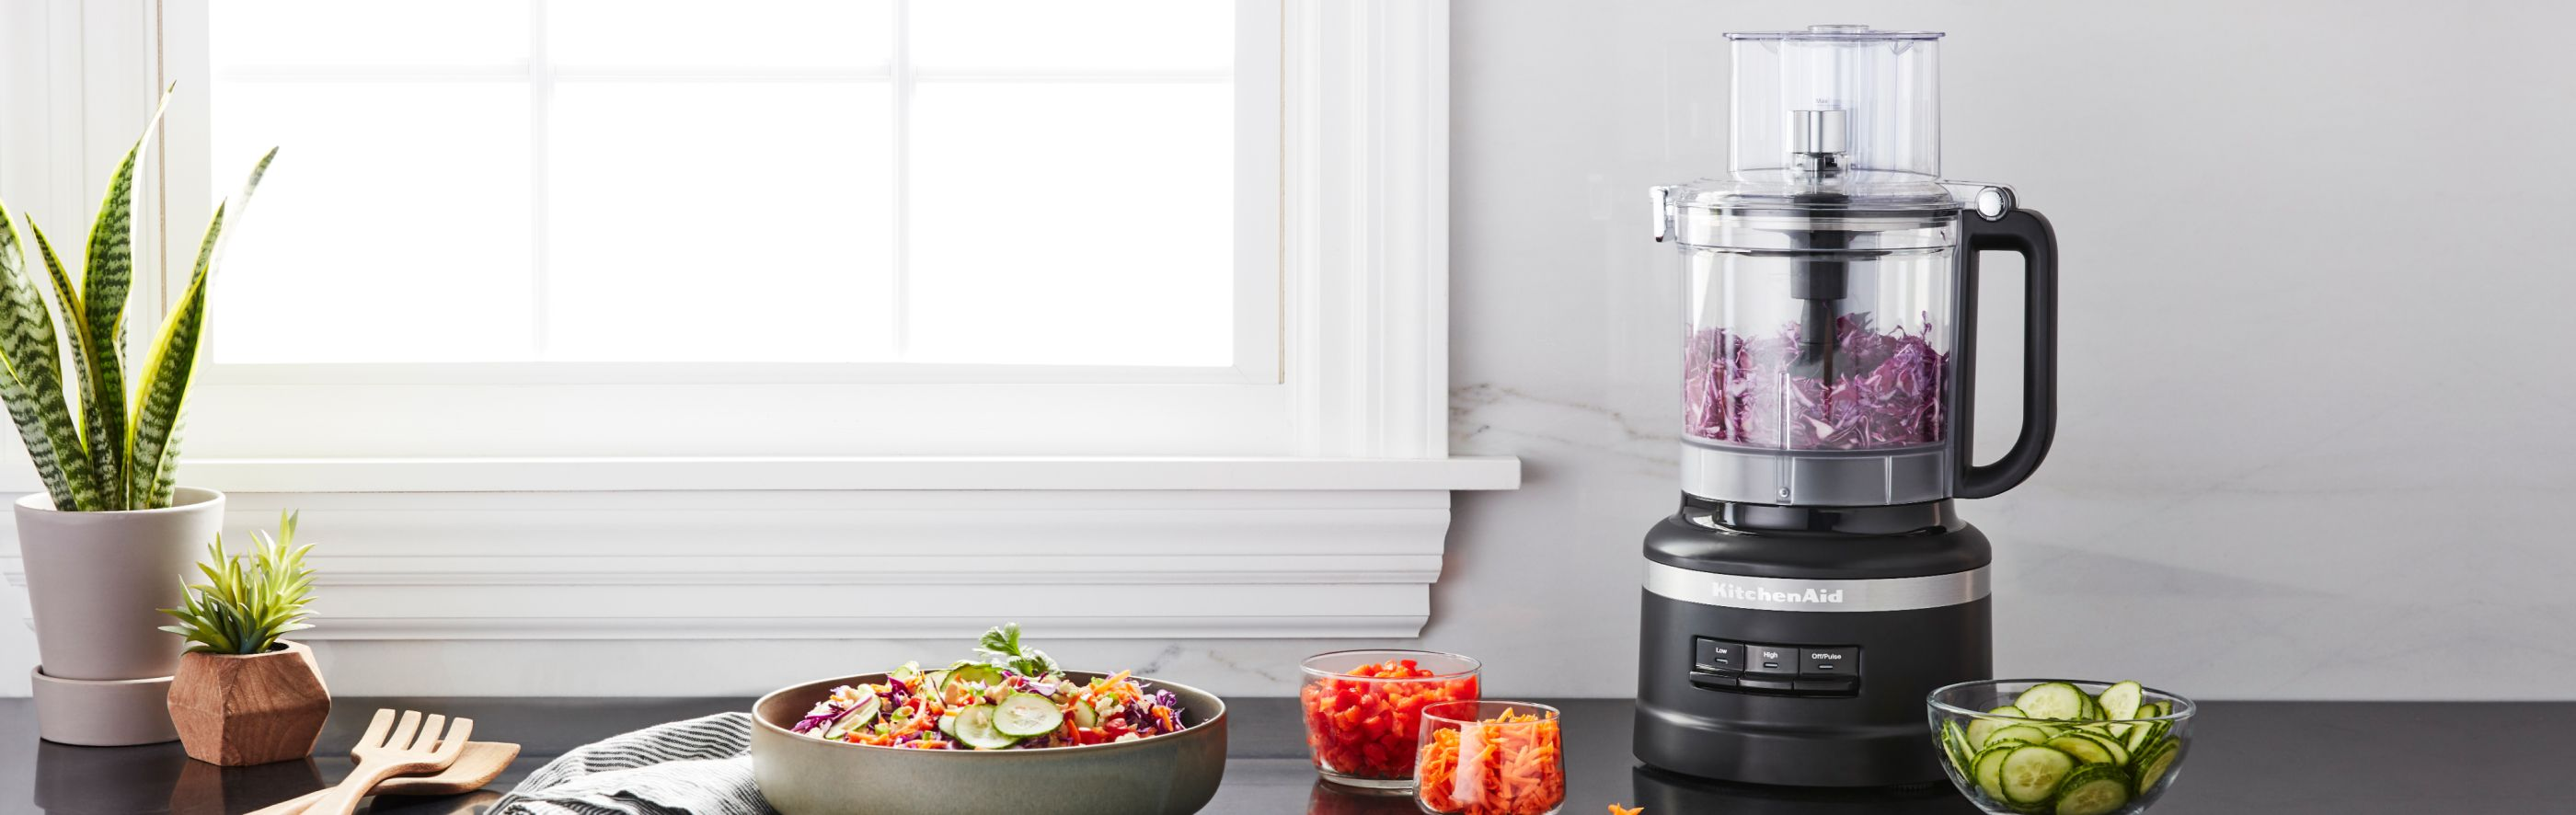 KitchenAid® food processor on a counter among chopped and sliced vegetables.